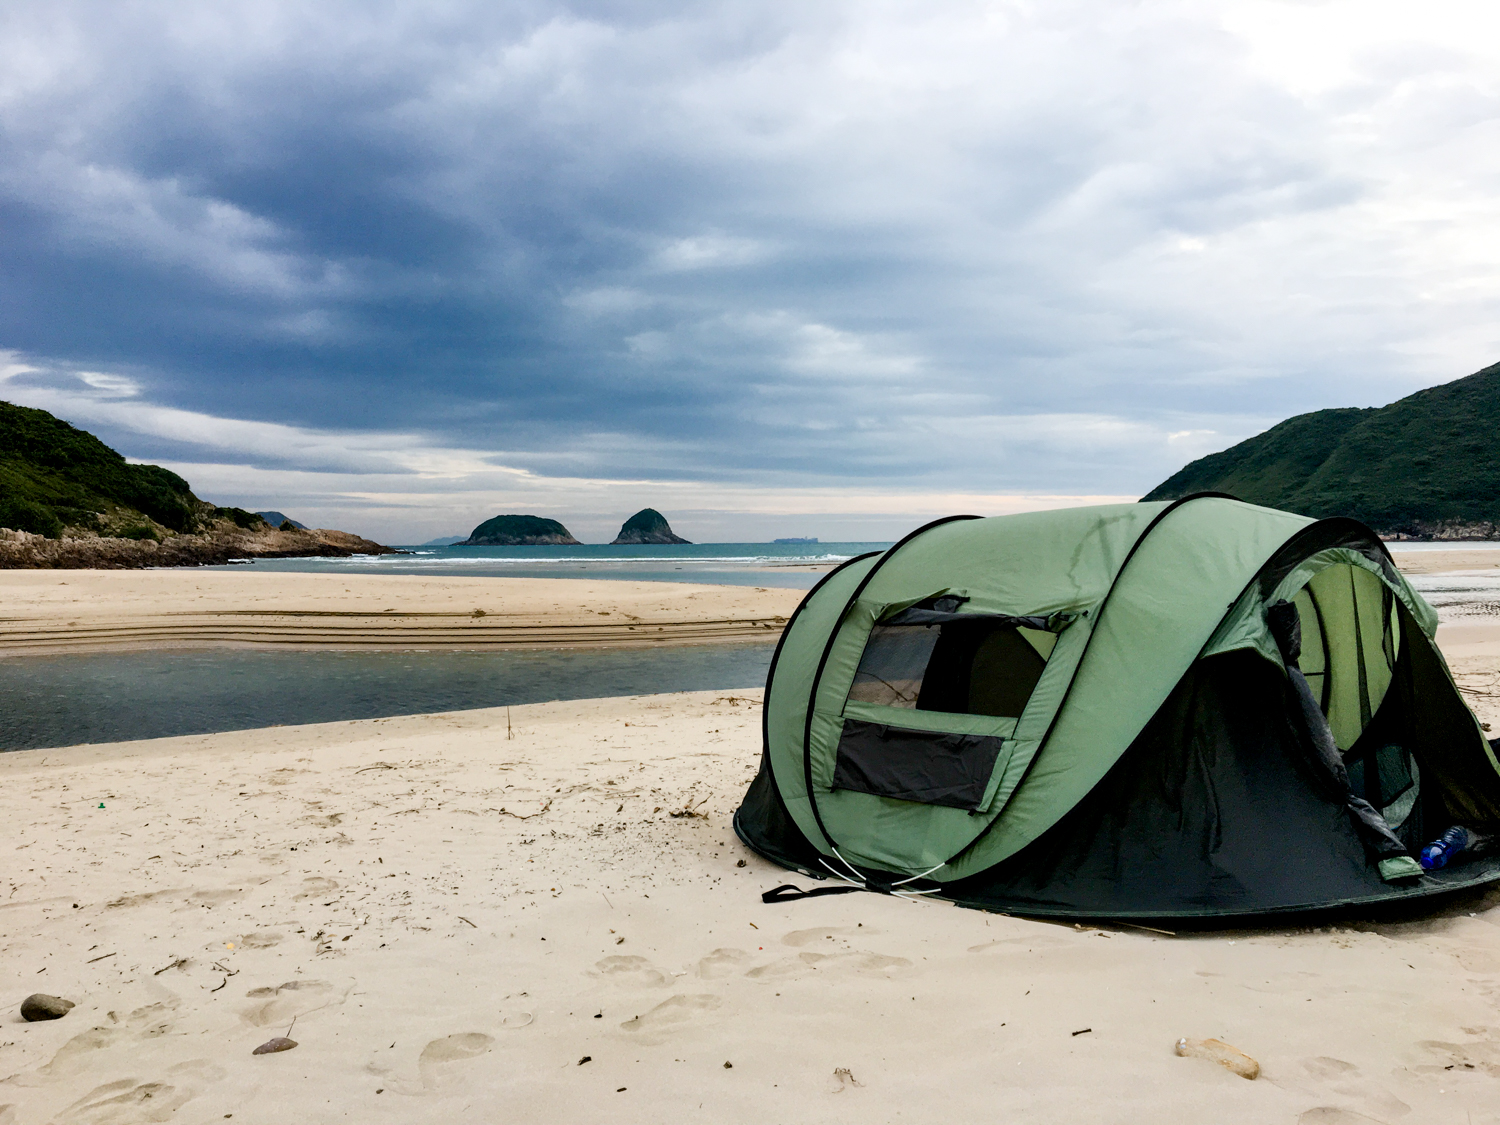 Photo of a camping tent on the beach